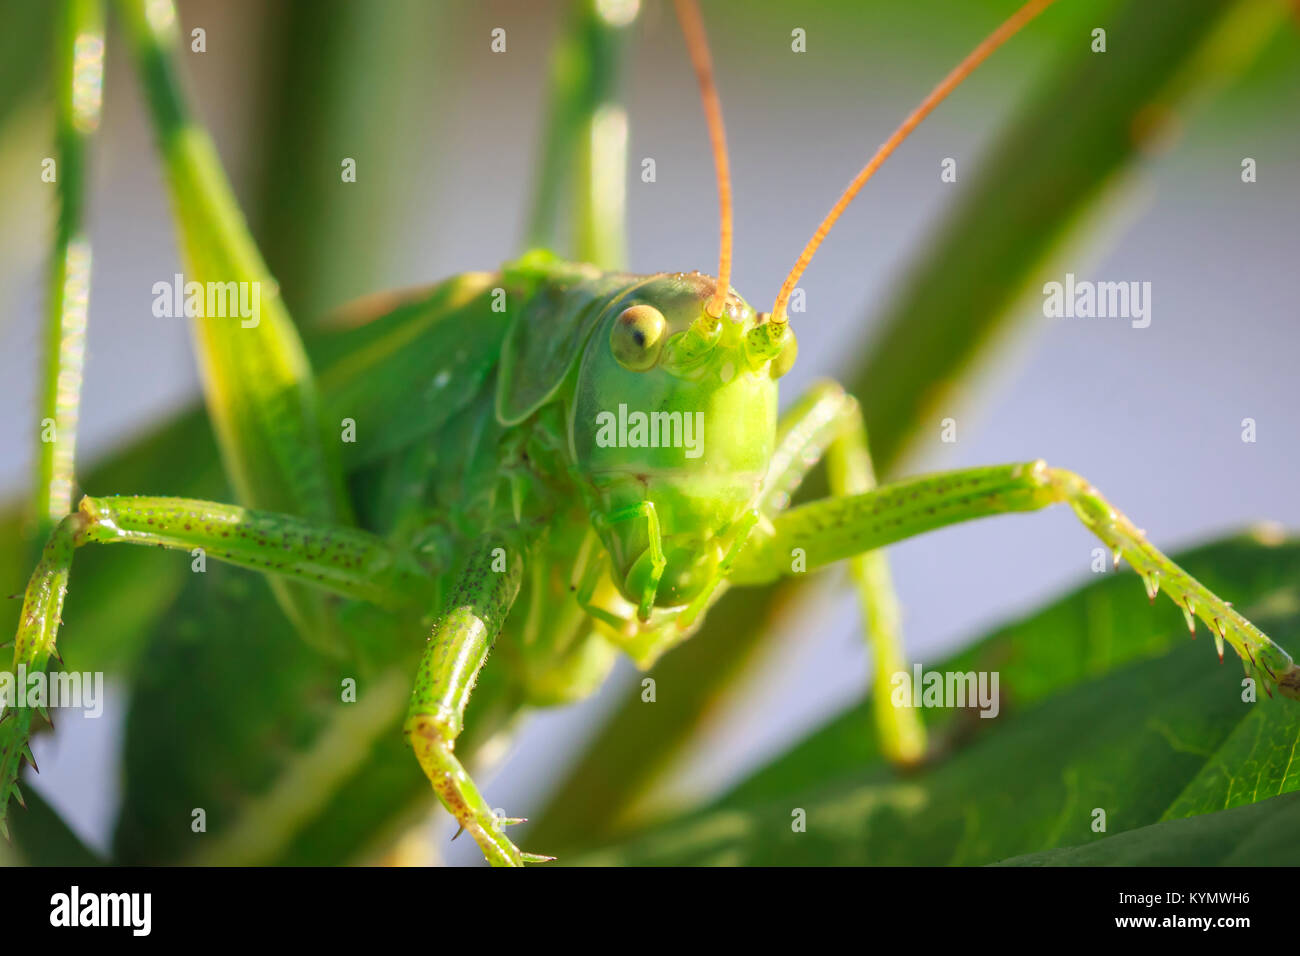 Makro head View close-up eine große Green Bush - Kricket, Tettigonia Viridissima. Stockbild